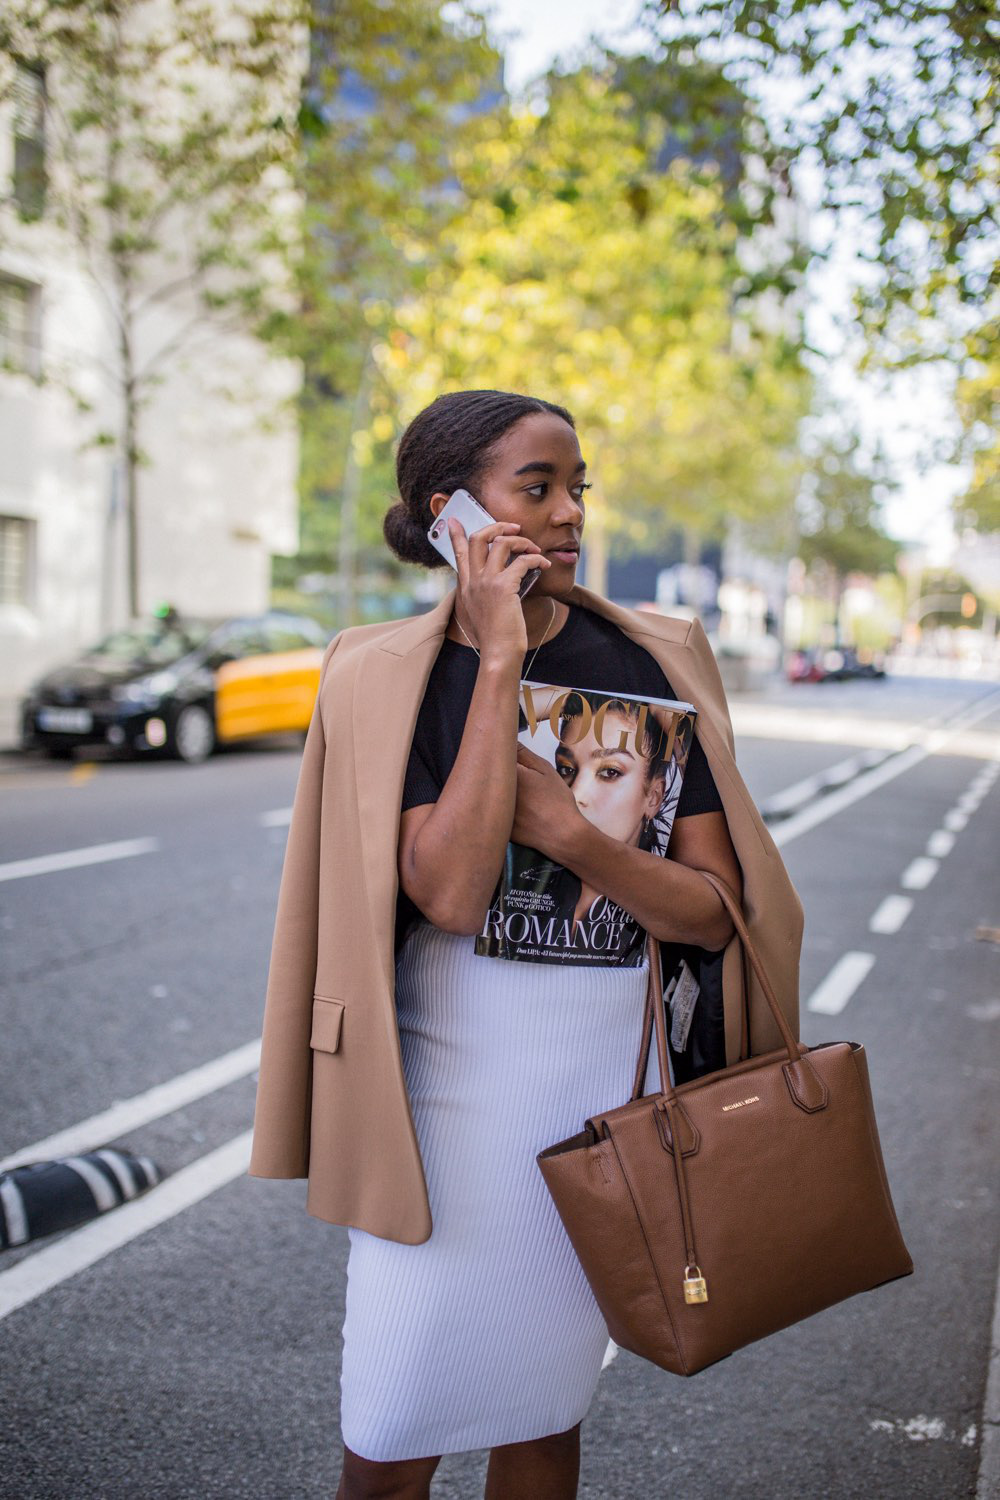 German fashion blogger in Barcelona